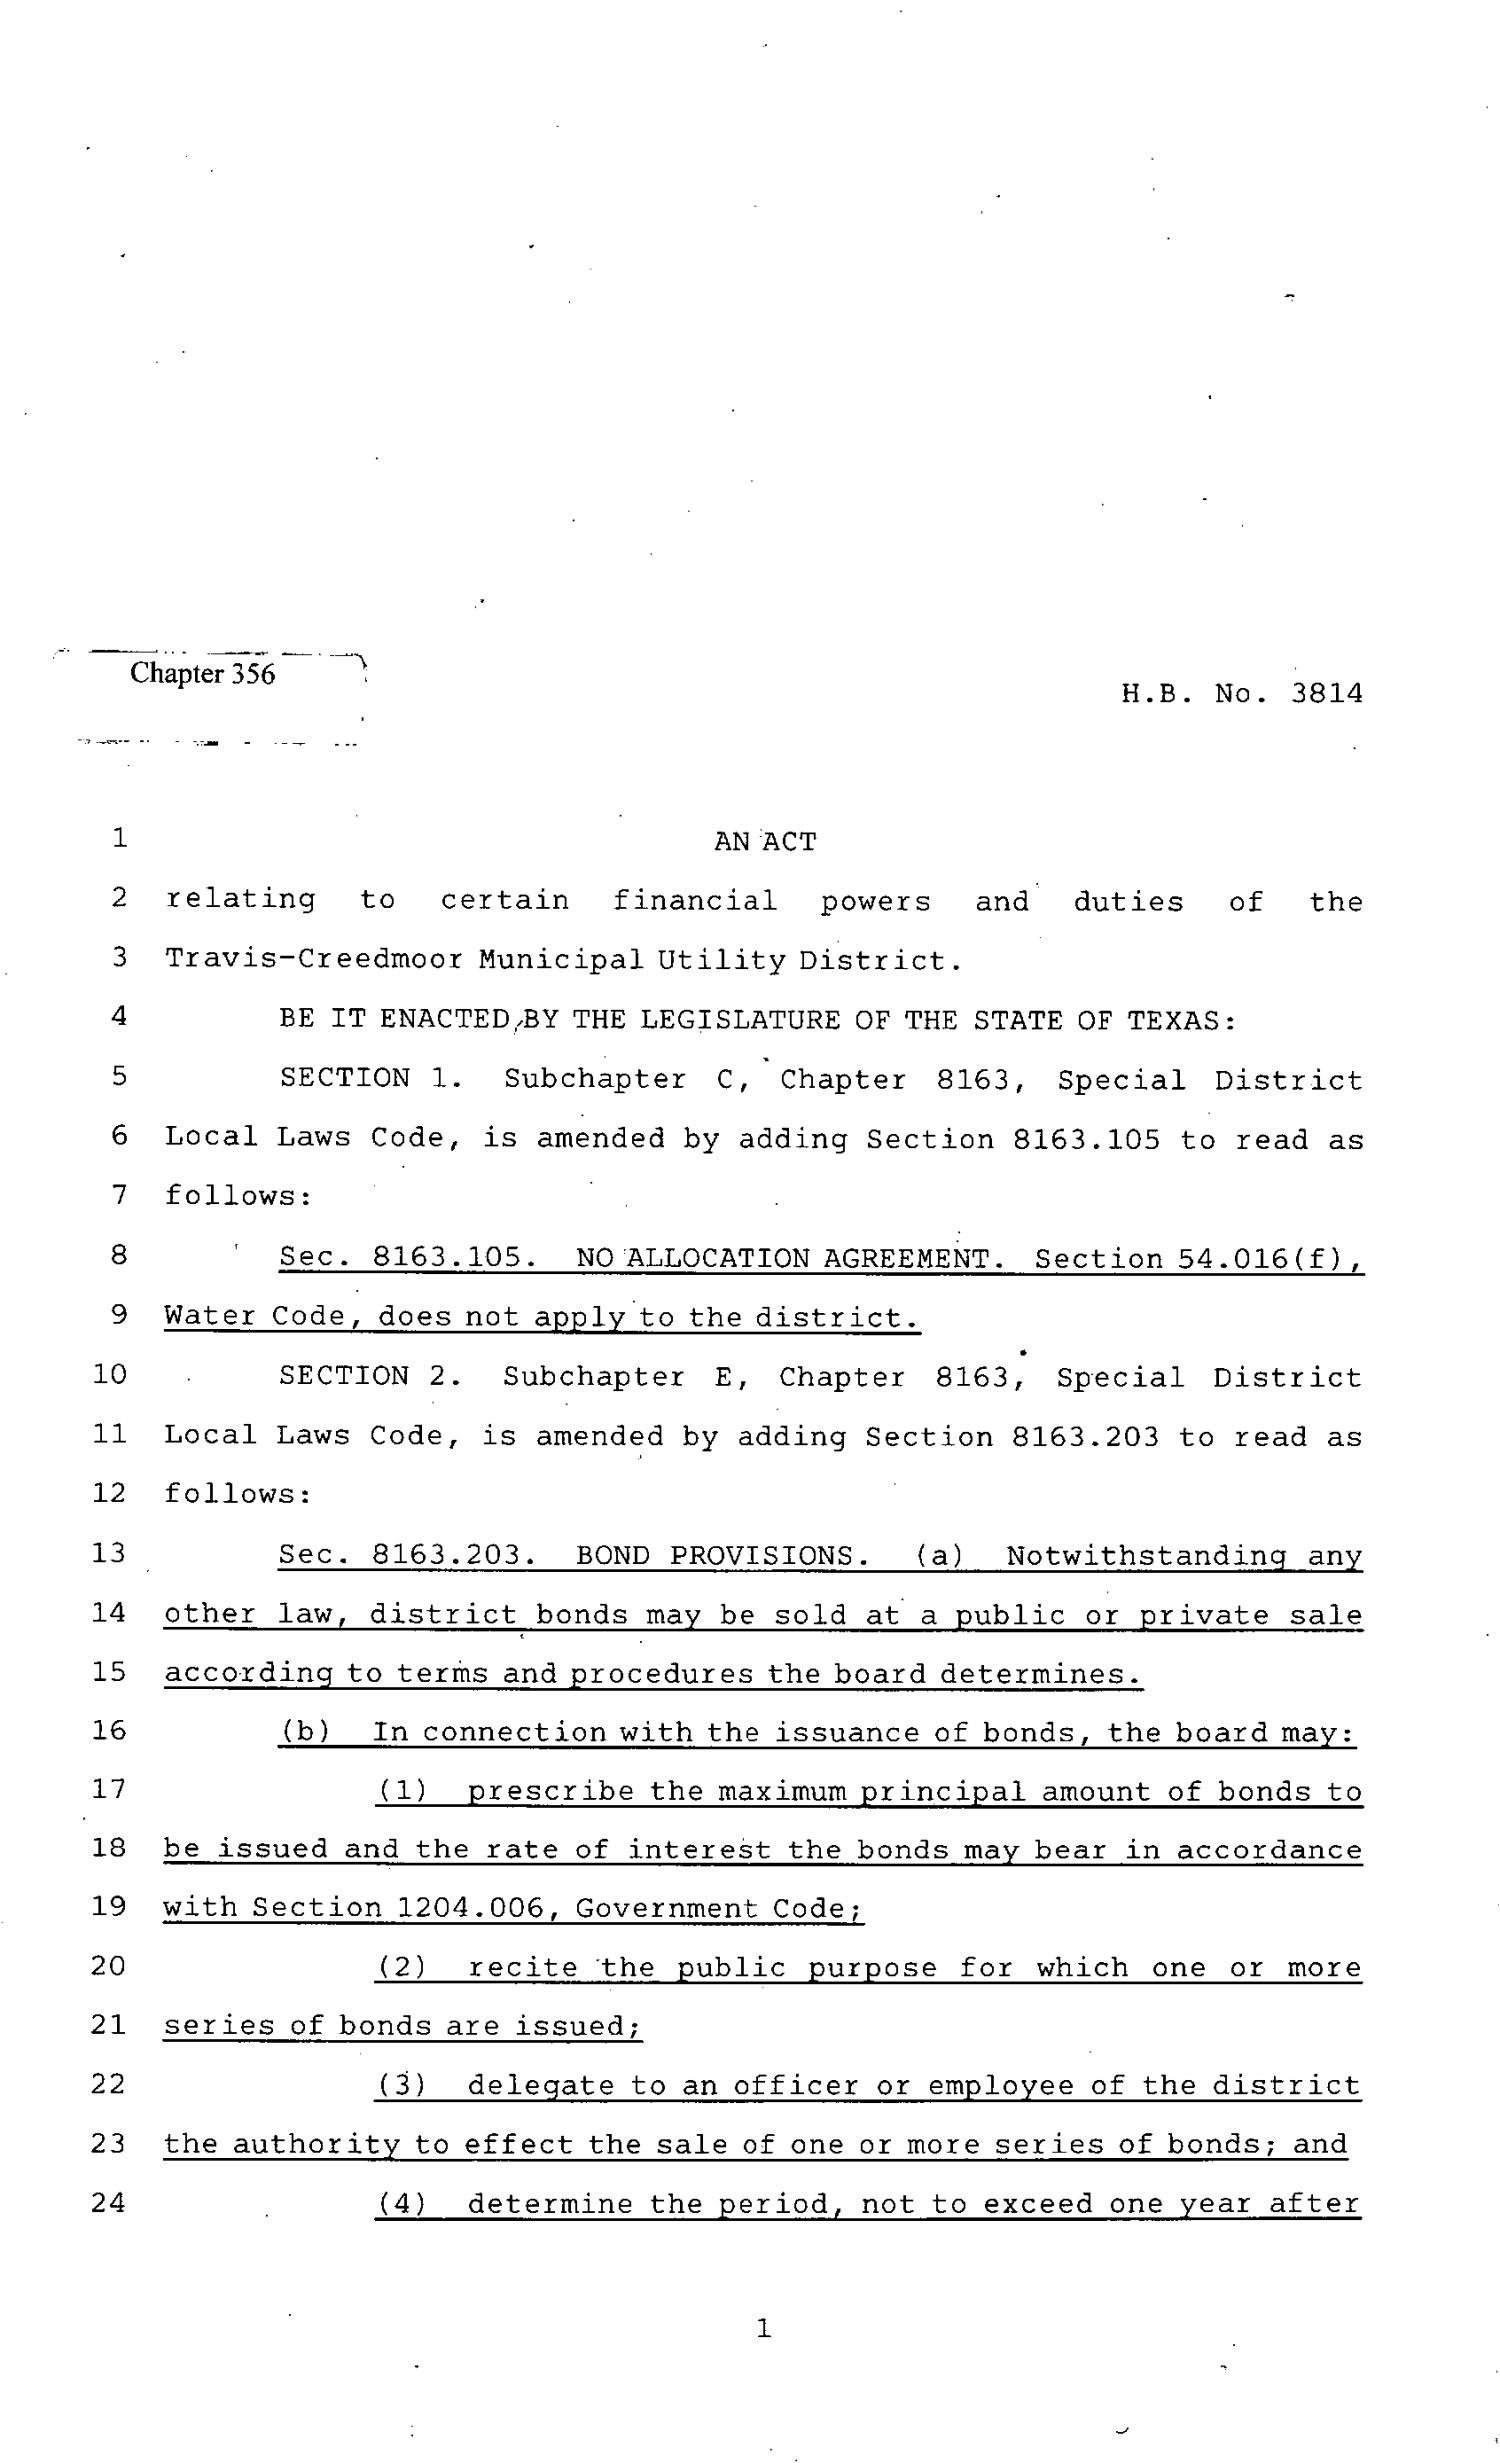 82nd Texas Legislature, Regular Session, House Bill 3814, Chapter 356                                                                                                      [Sequence #]: 1 of 4